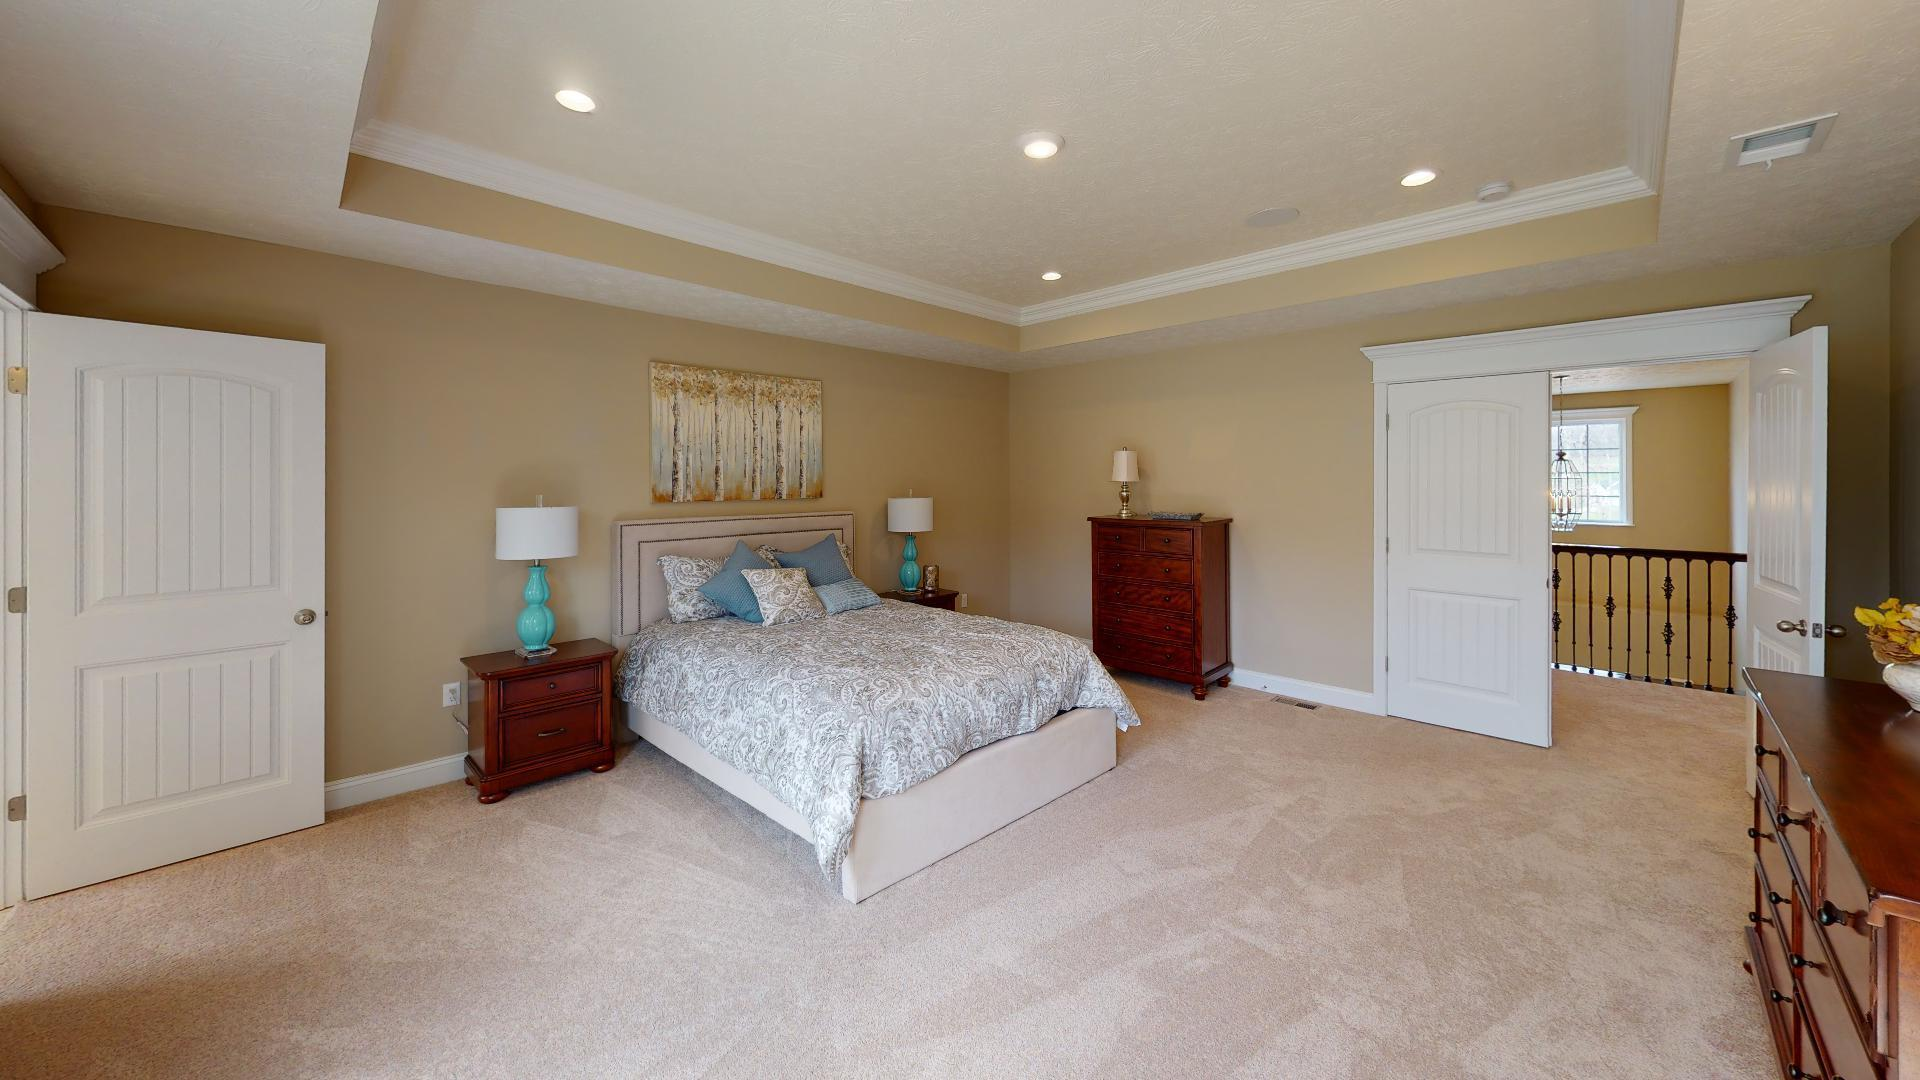 Bedroom featured in the Hoover By Maronda Homes in Pittsburgh, PA